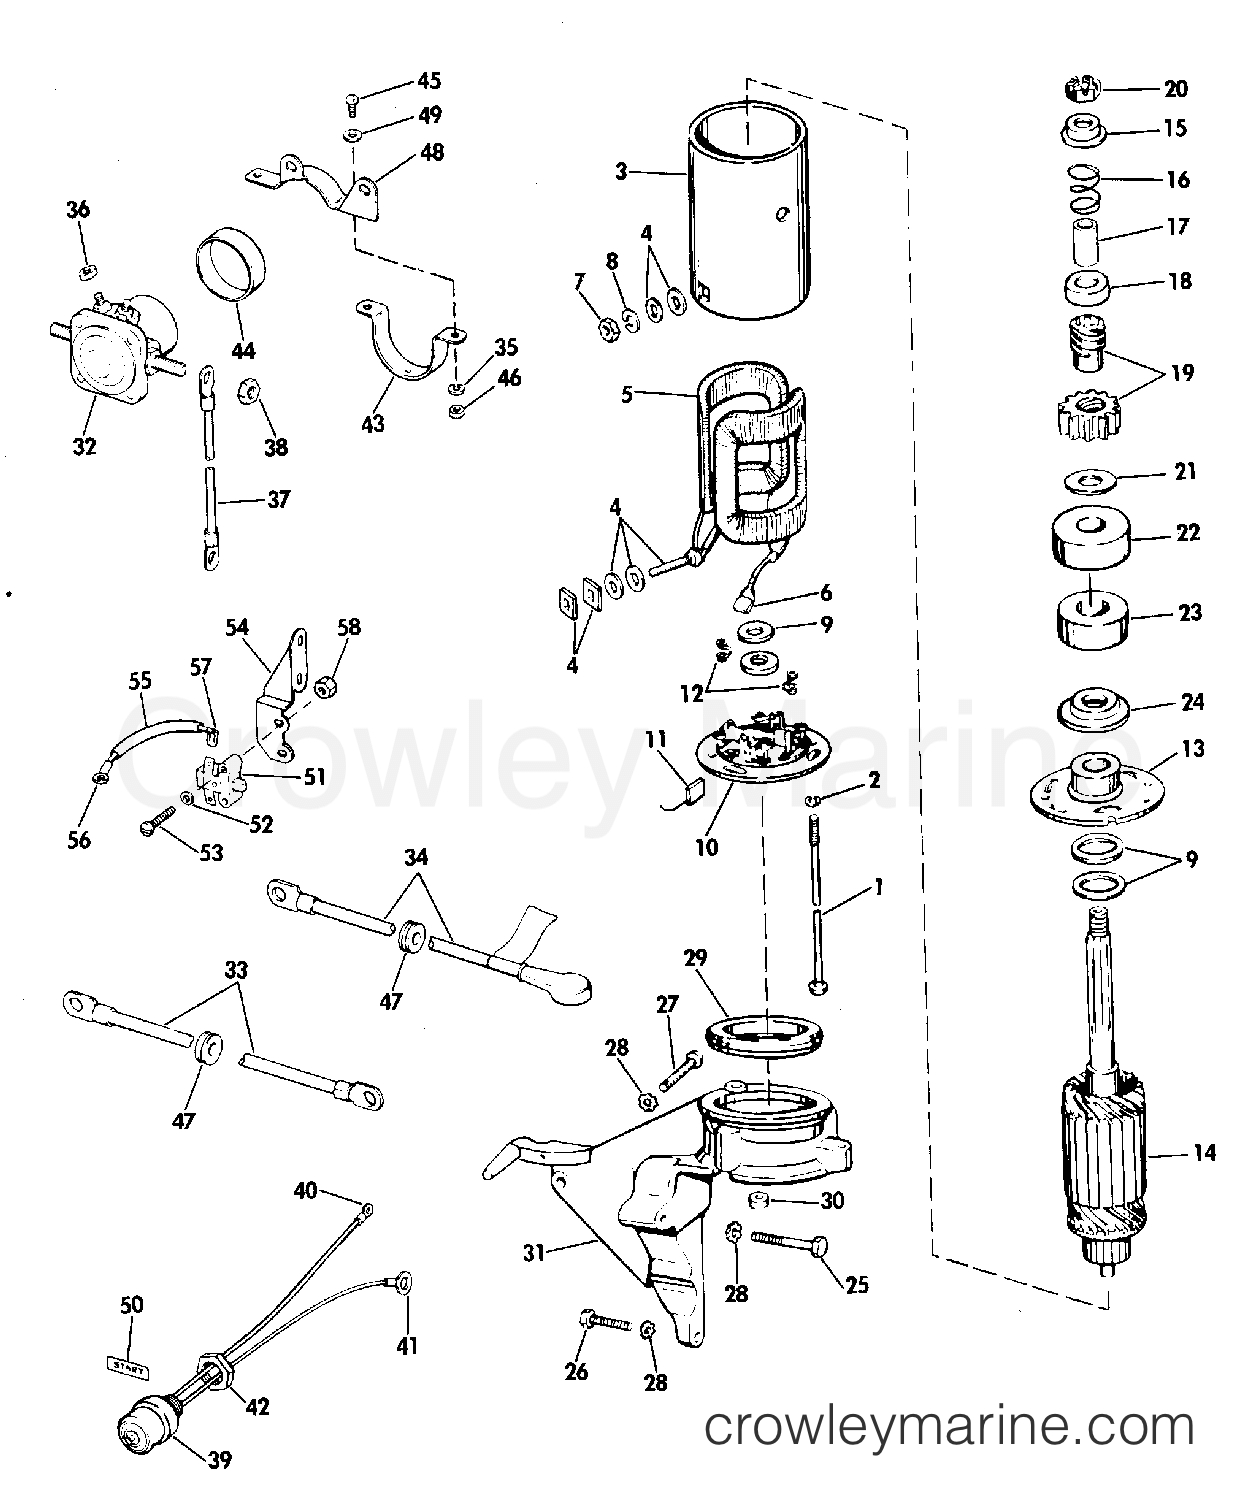 2005 mercury outboard wiring diagram